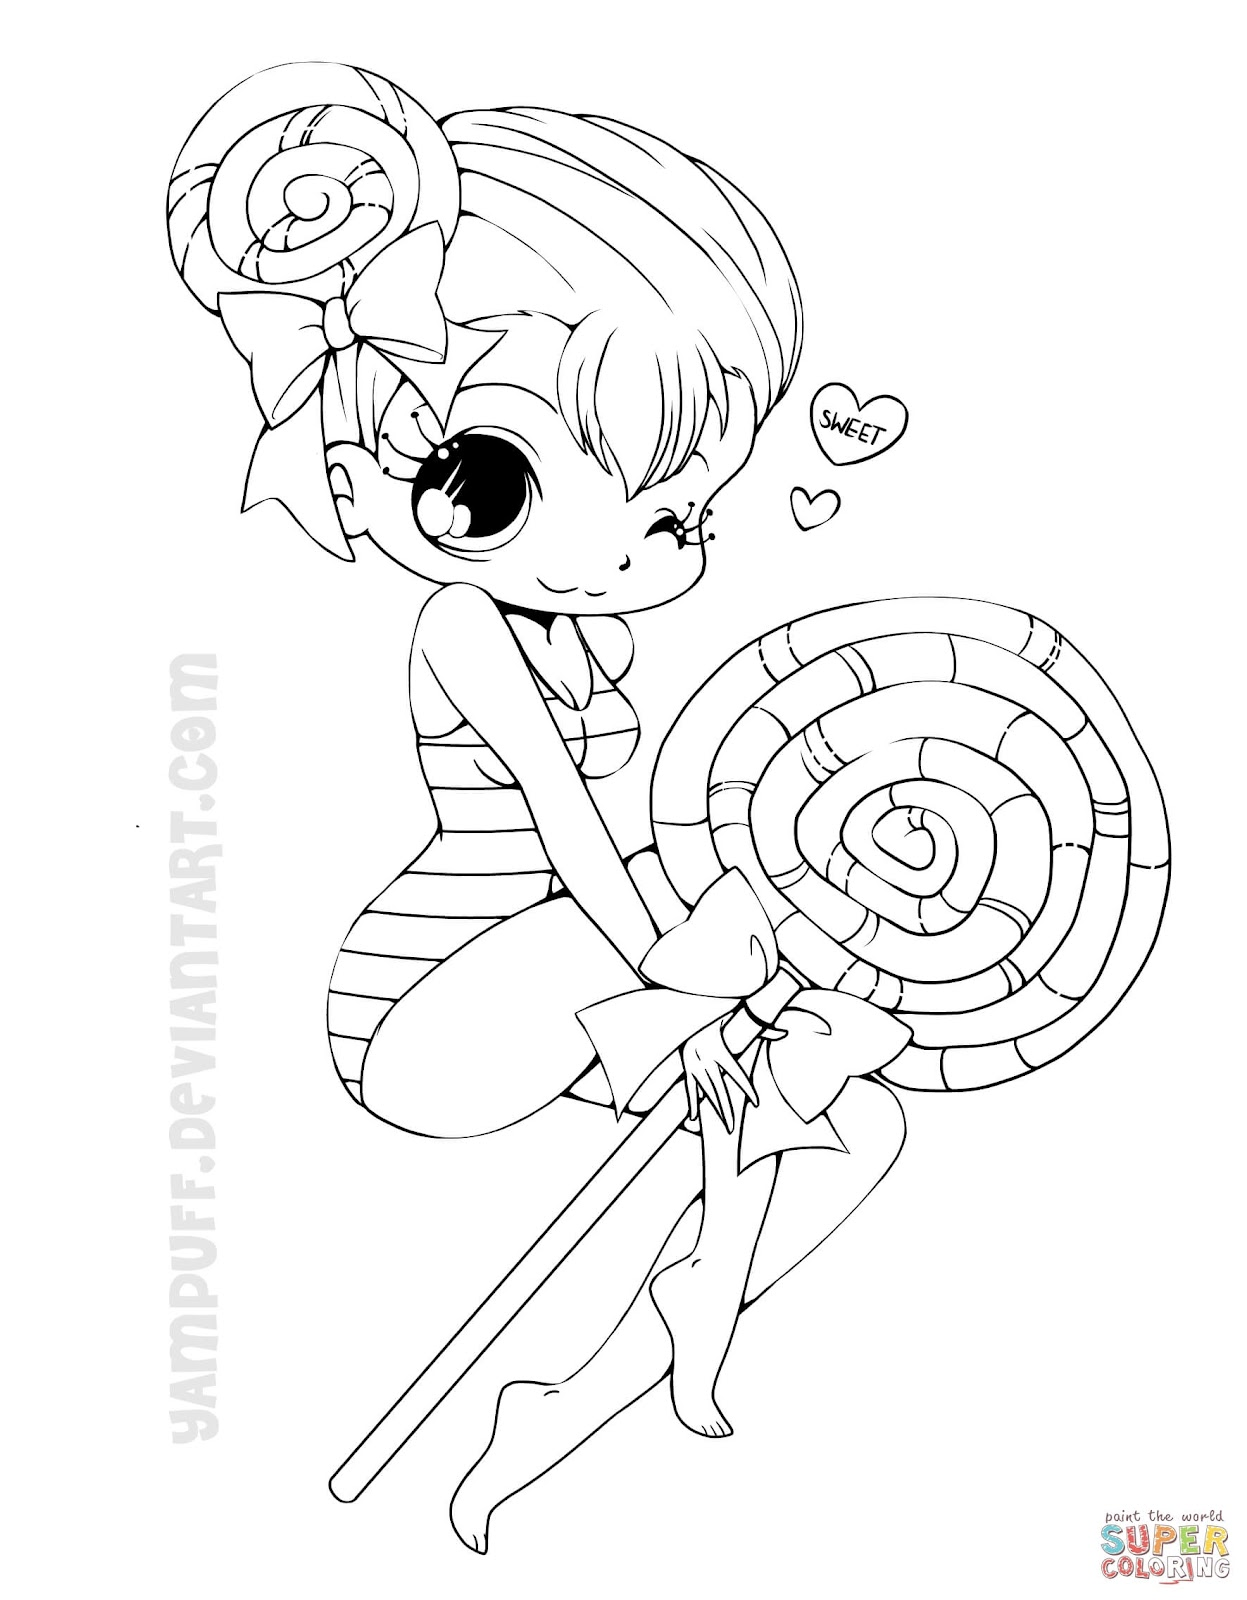 Best Free Chibi Anime Girls Coloring Pages Free Kids Children And Adult Coloring Pages